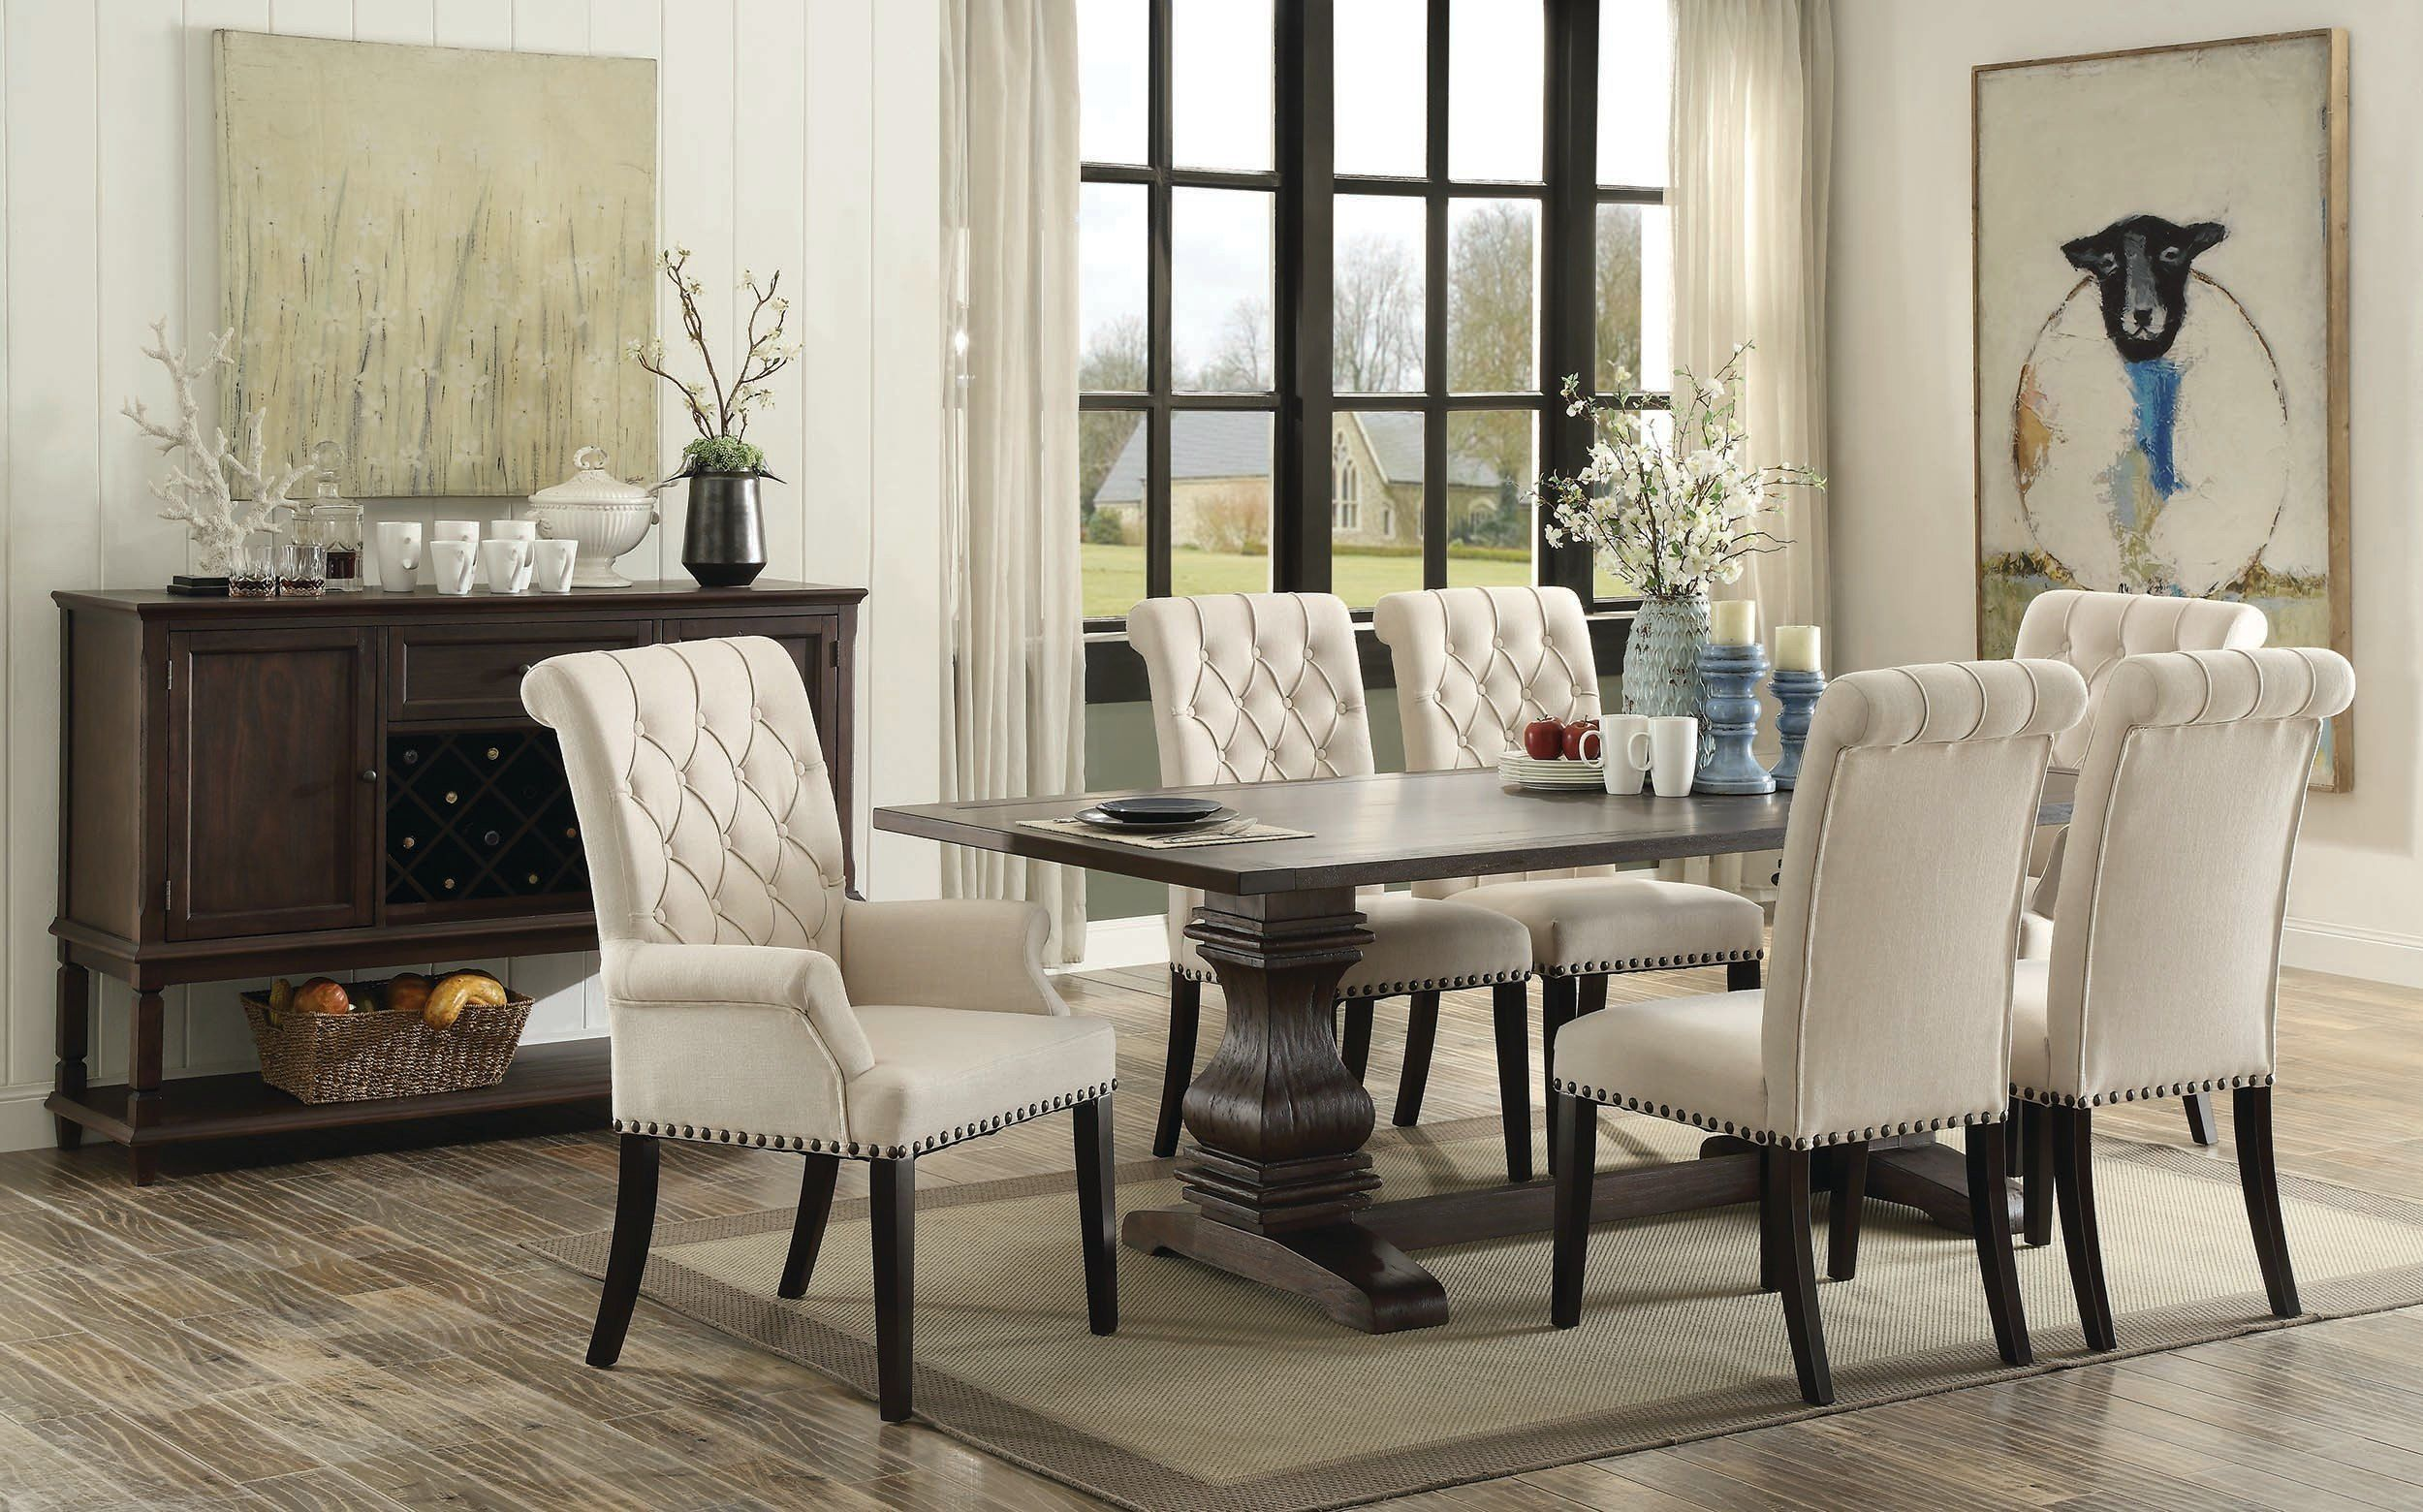 Parkins Rustic Espresso 8 Piece Rectangular Dining Table Set  Tc Simple 8 Pc Dining Room Set Inspiration